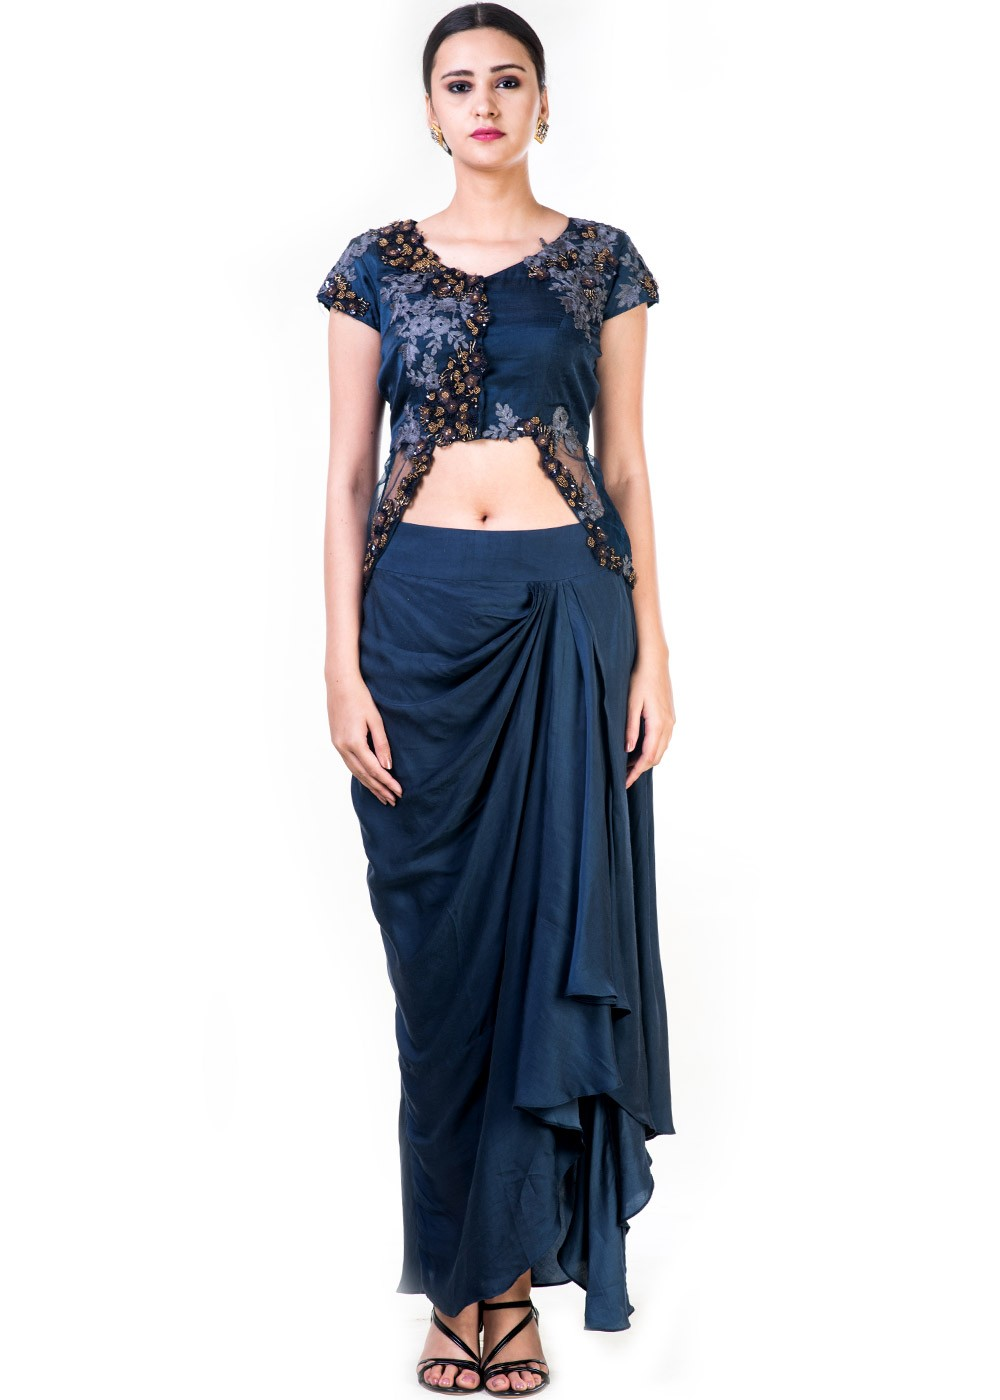 657118b3ba652 Indo Western Outfits  Buy Navy Blue Satin Crop Top With Draped Skirt ...